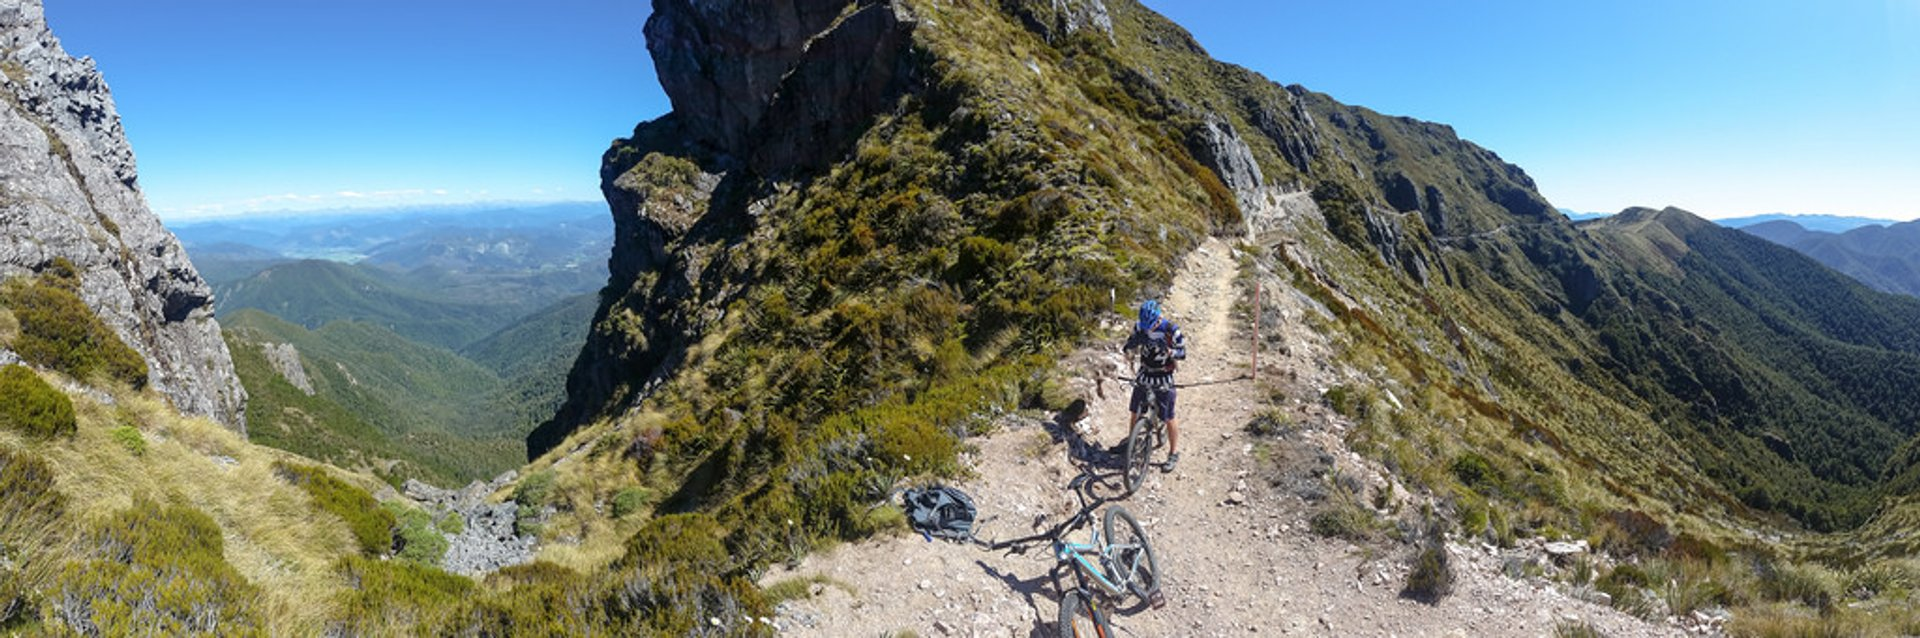 Best time for Biking in New Zealand 2020